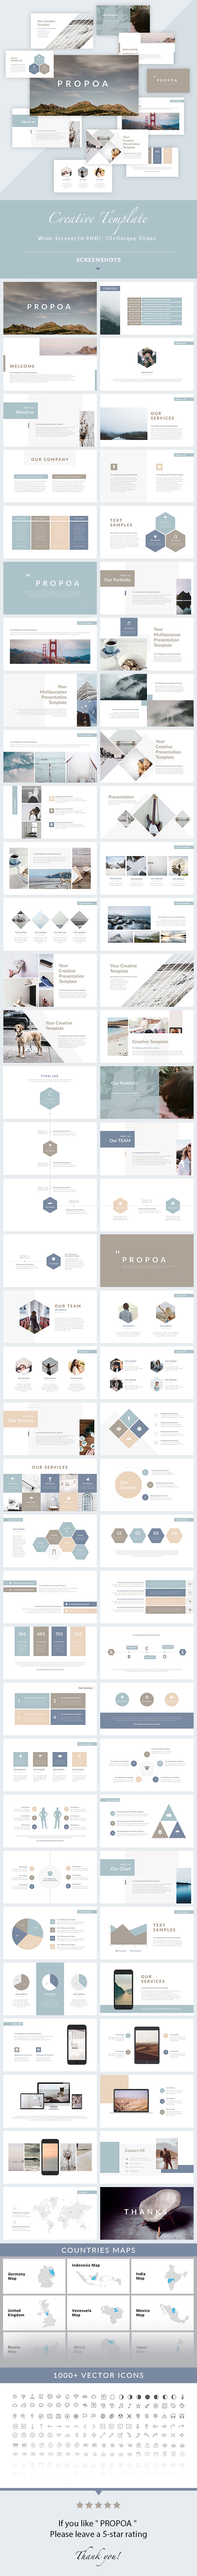 GraphicRiver Propoa PowerPoint Presentation Template 21101622